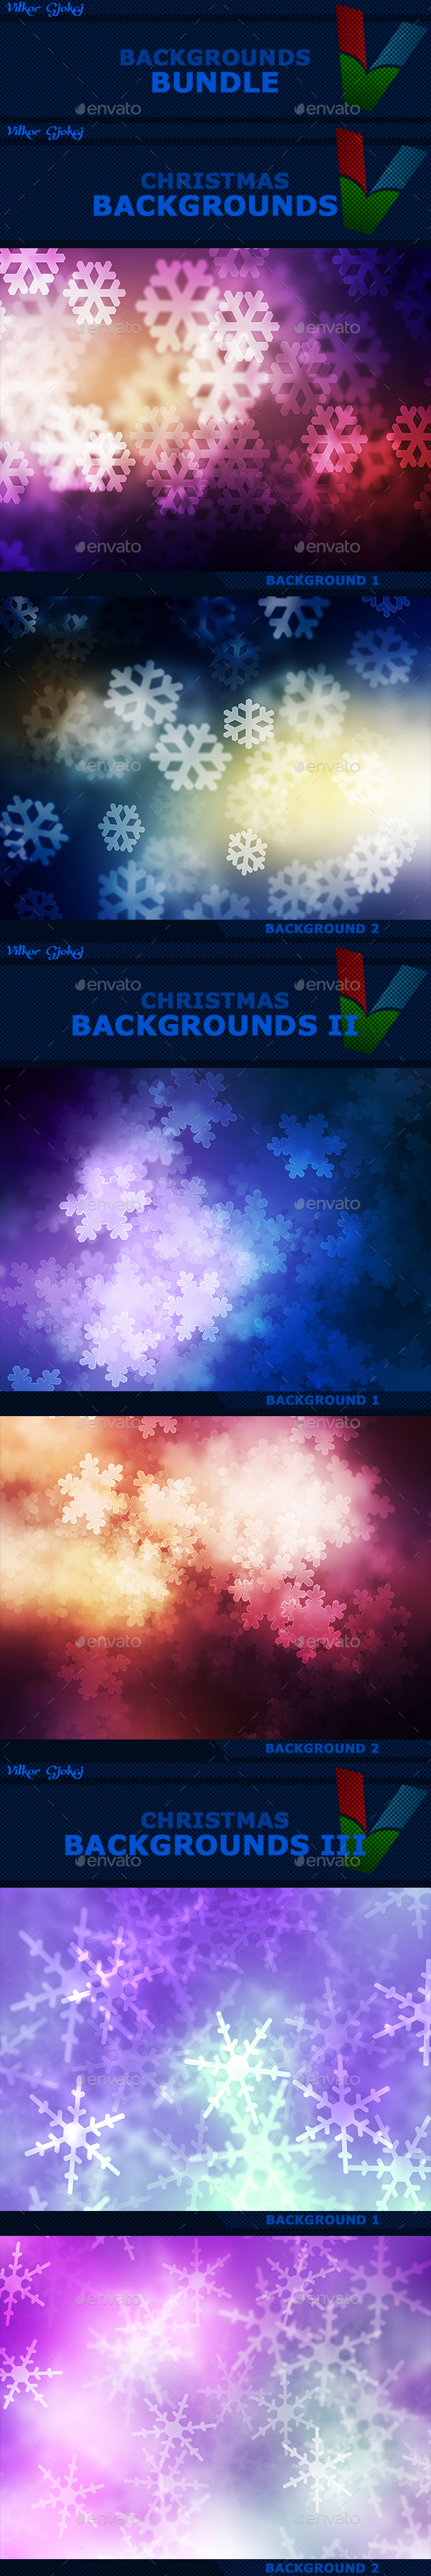 15 Christmas Backgrounds Bundle - Abstract Backgrounds